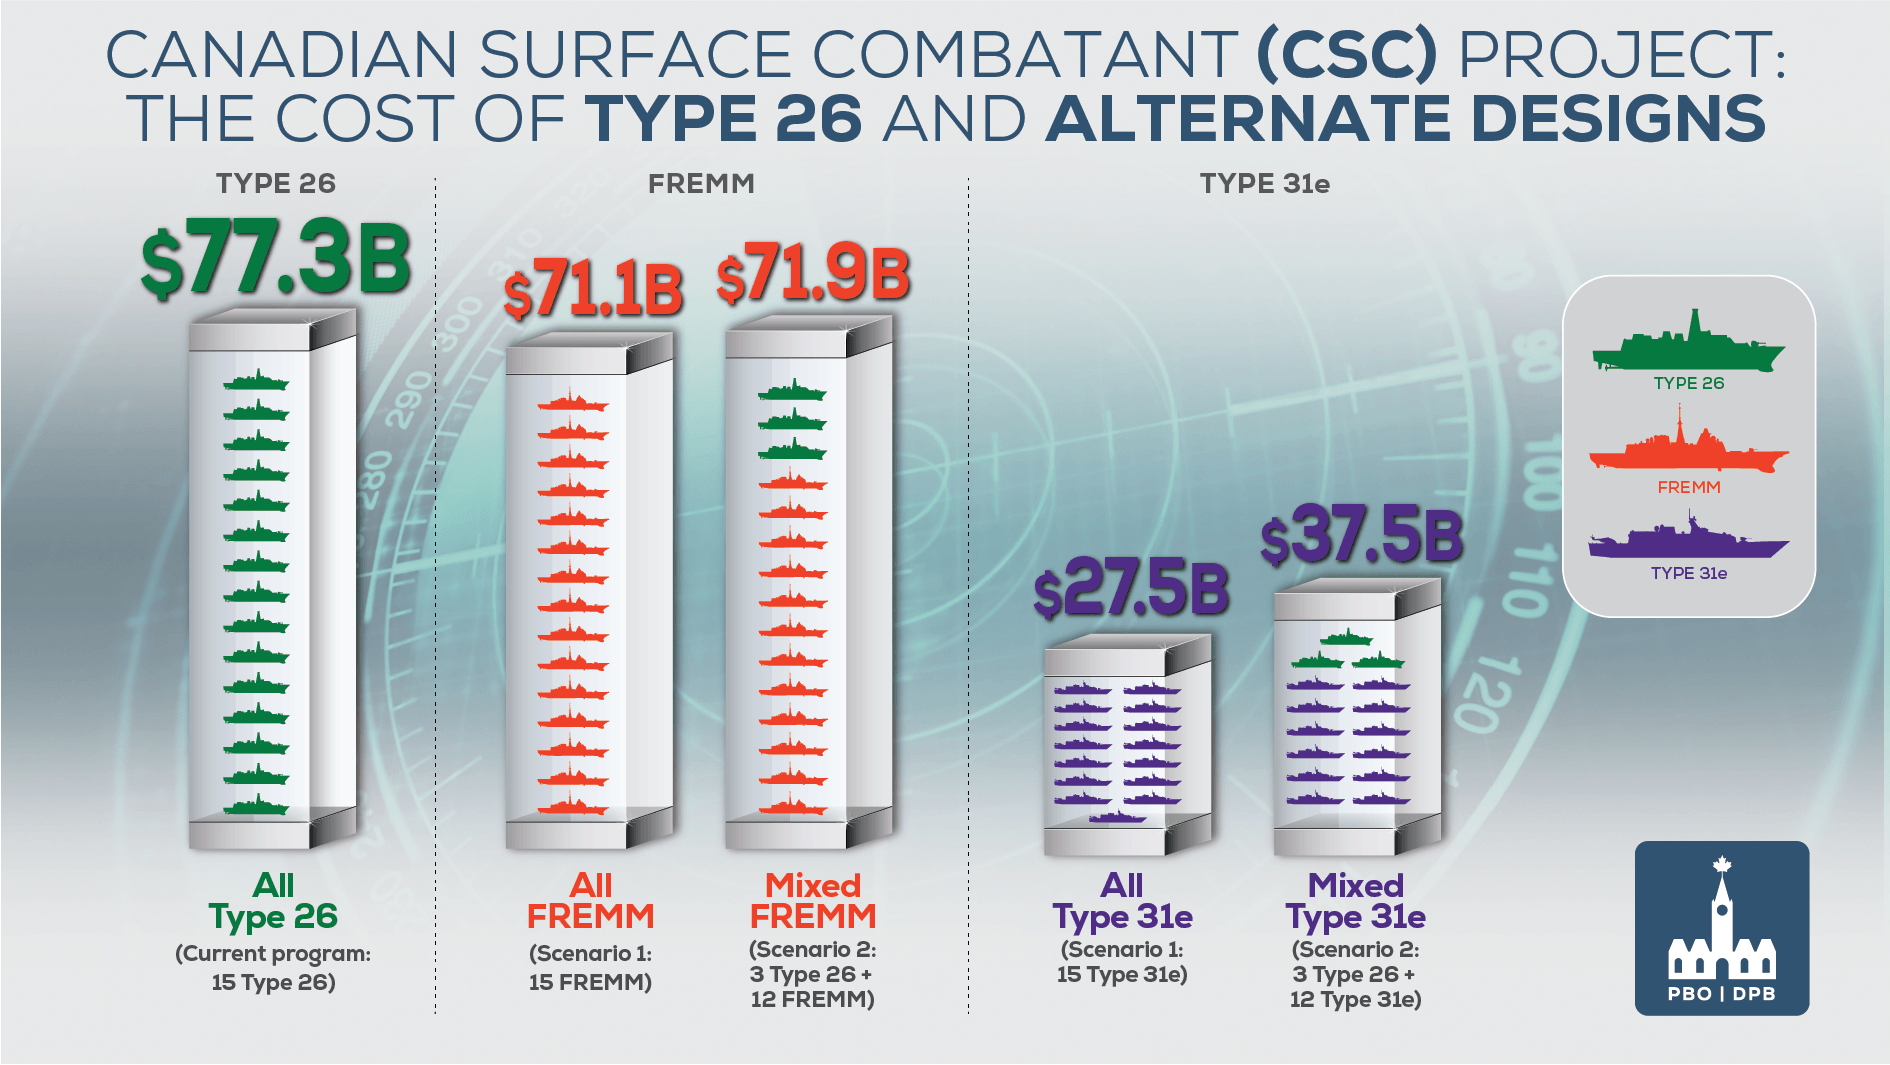 Canadian Surface Combatant (CSC) Project: The Cost of Type 26 and Alternate Designs. Type 26 (Current program: 15 Type 26) $77.3B; FREMM: Scenario 1: 15 FREMM $71.1B/Scenario 2: 3 Type 26 + 12 FREMM $71.9B; Type 31e: Scenario 1: 15 Type 31e $27.5B/Scenario 2: 3 Type 26 + 12 Type 31e $37.5B.